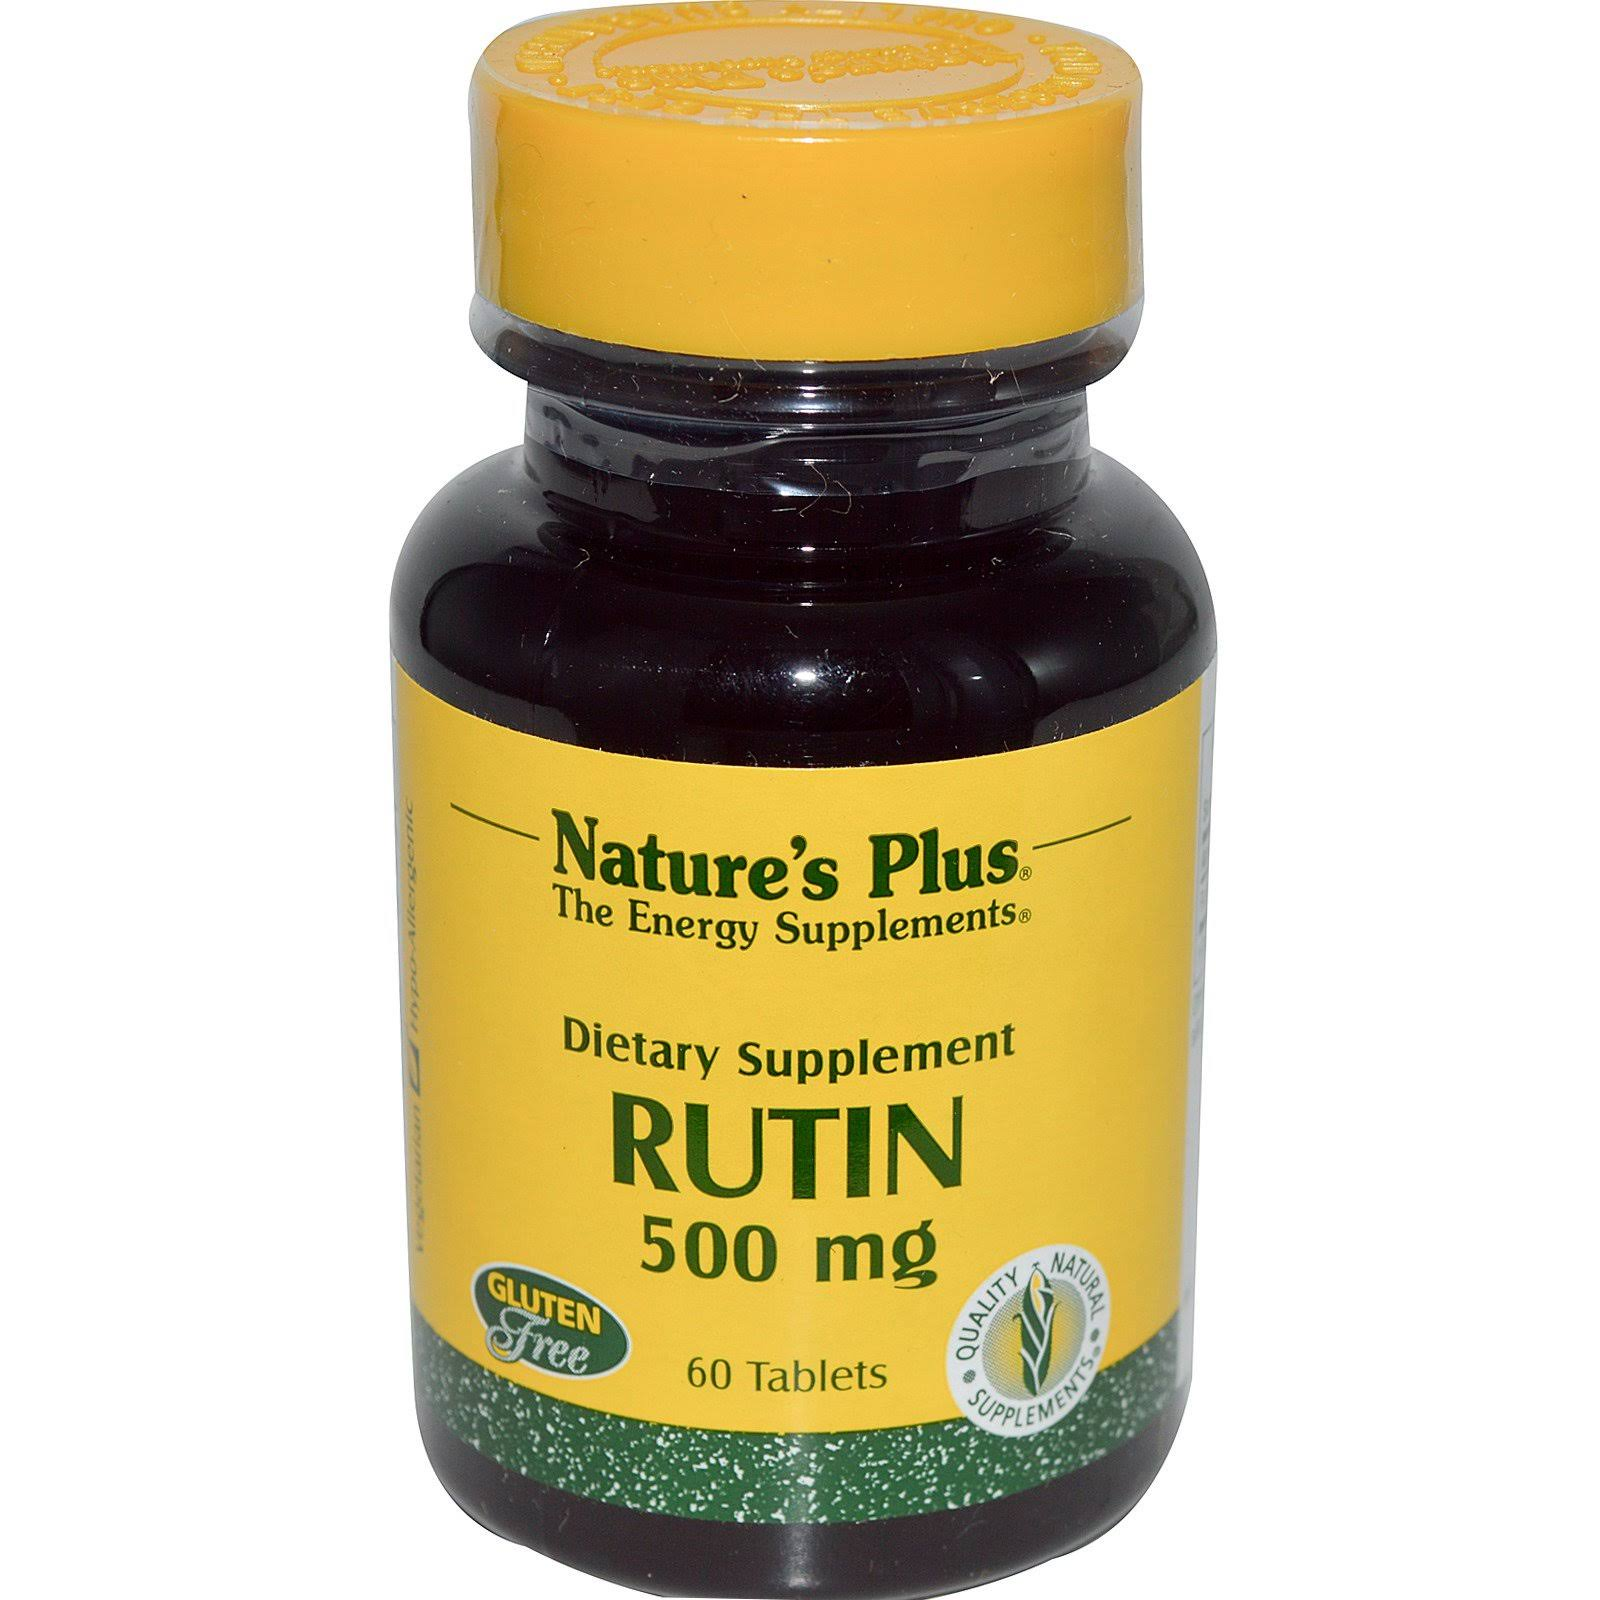 Nature's Plus Rutin Supplement - 500mg, 60 Tablets